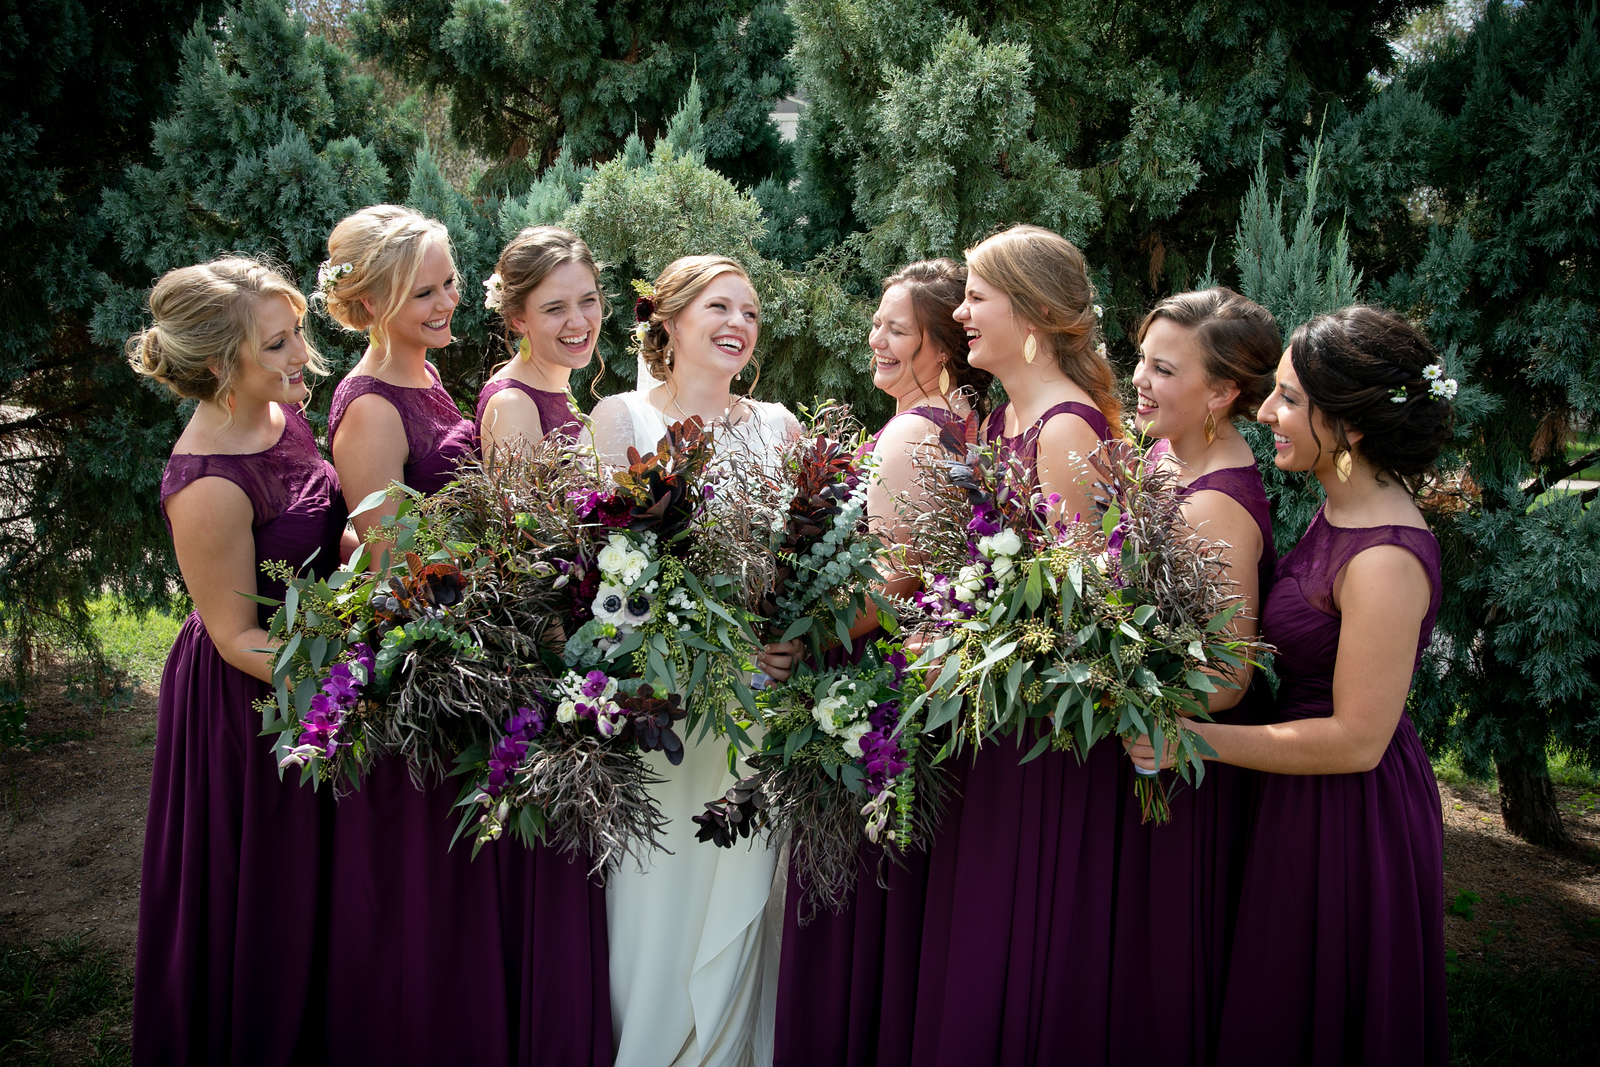 bridesmaids wearing purple dresses holding wildflower bouquets smiling at a brind standing in the middle of them